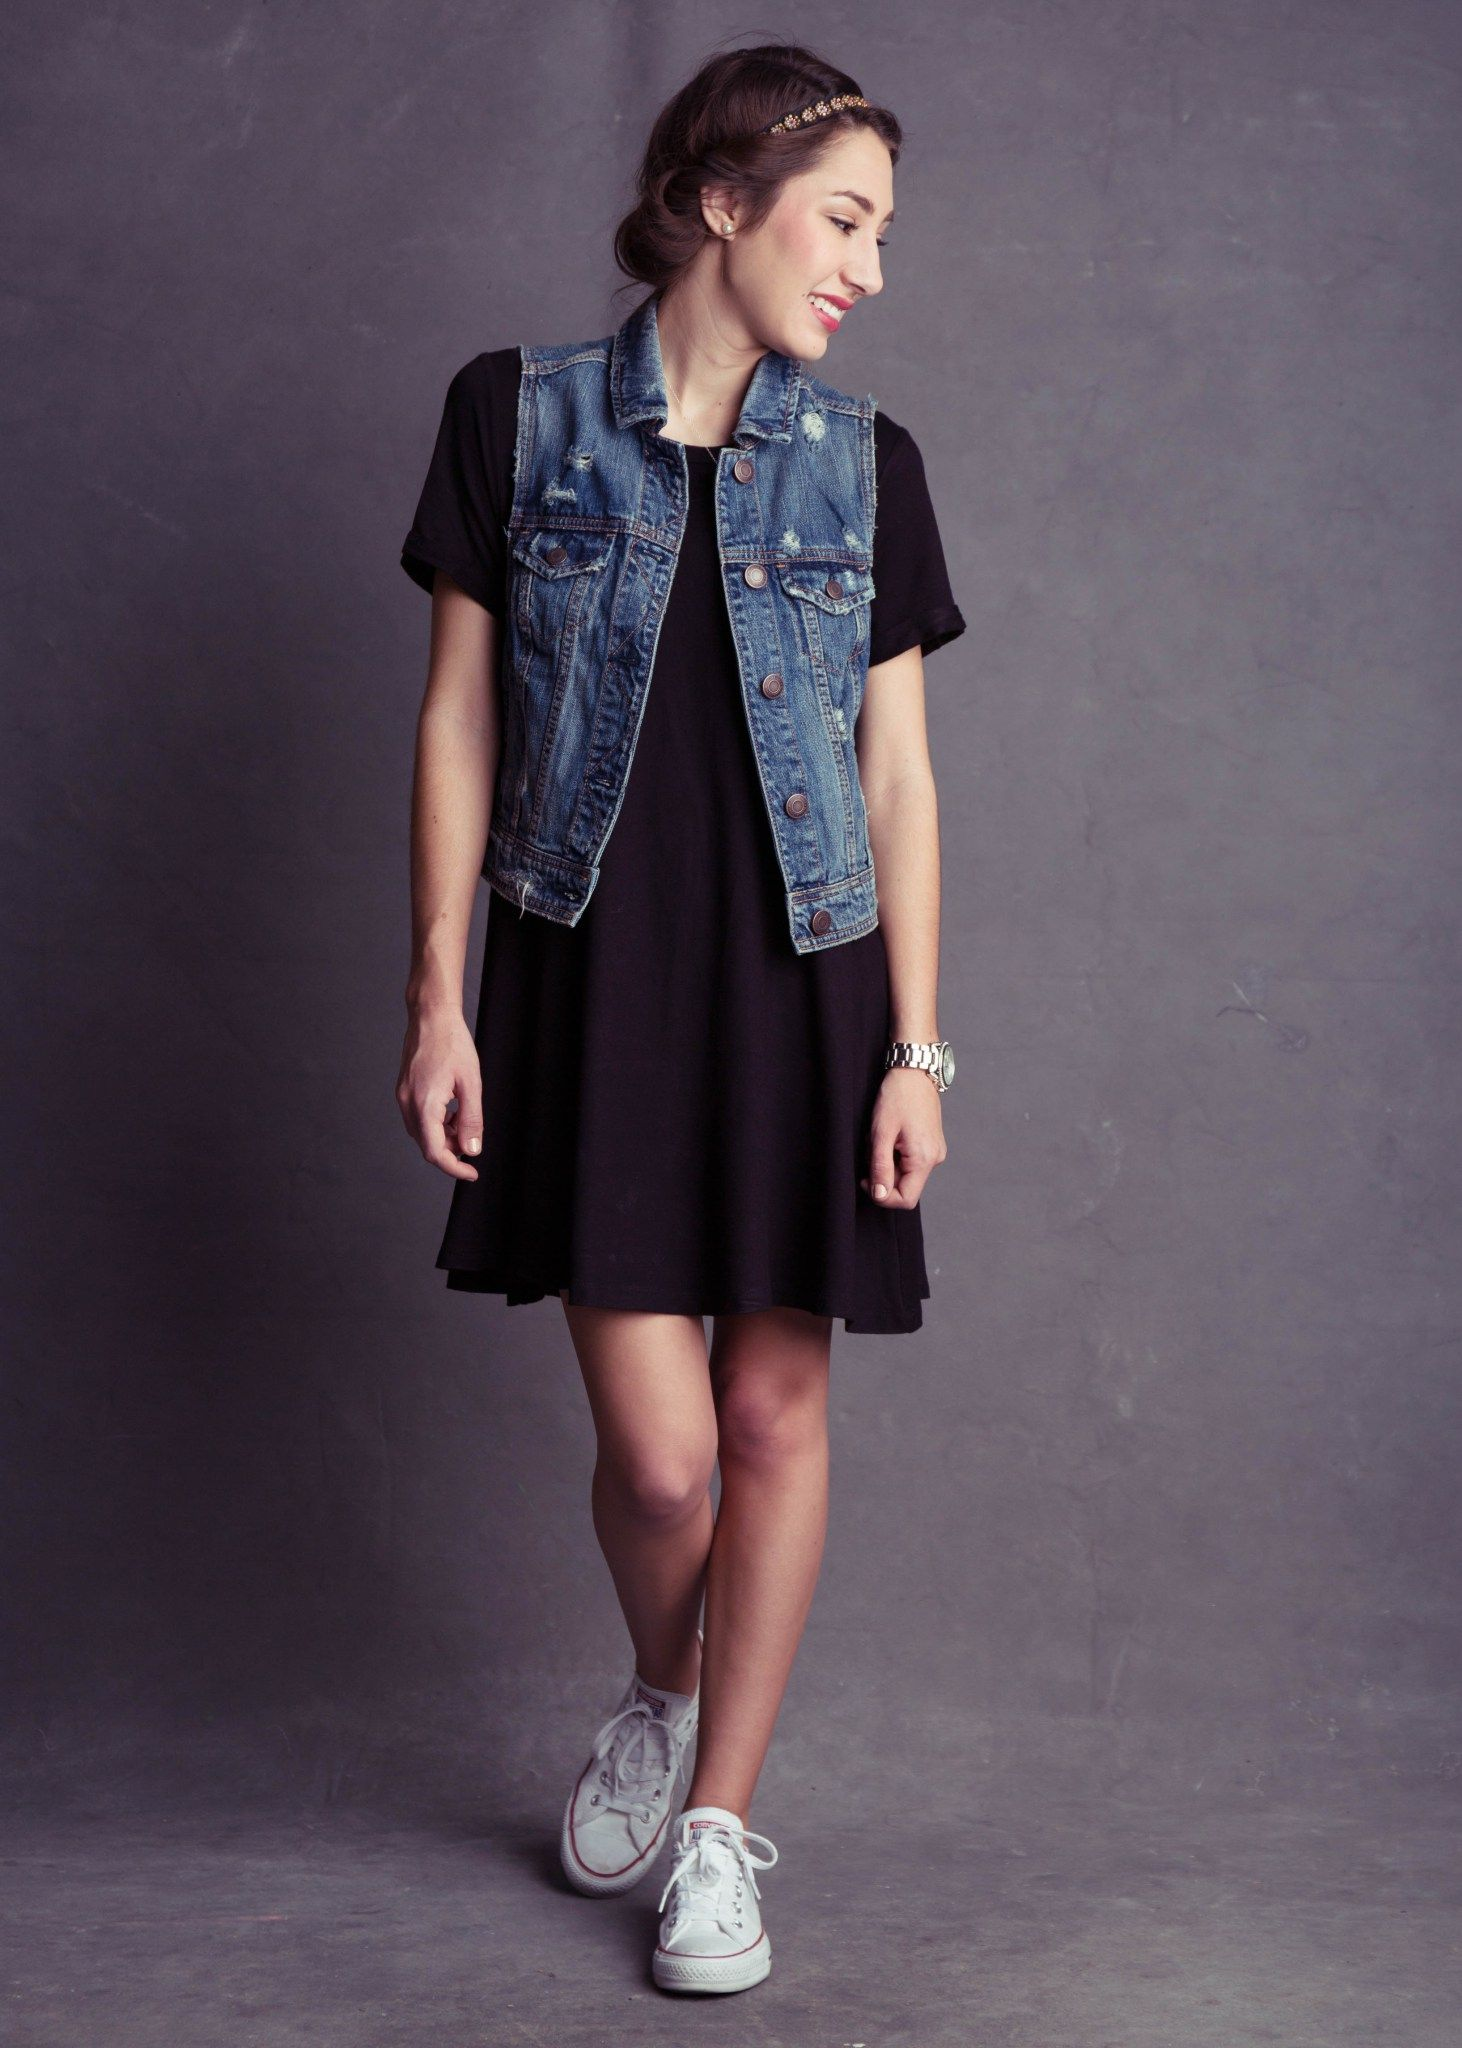 American eagle jean vest with black t shirt dress and white converse with princess rolled